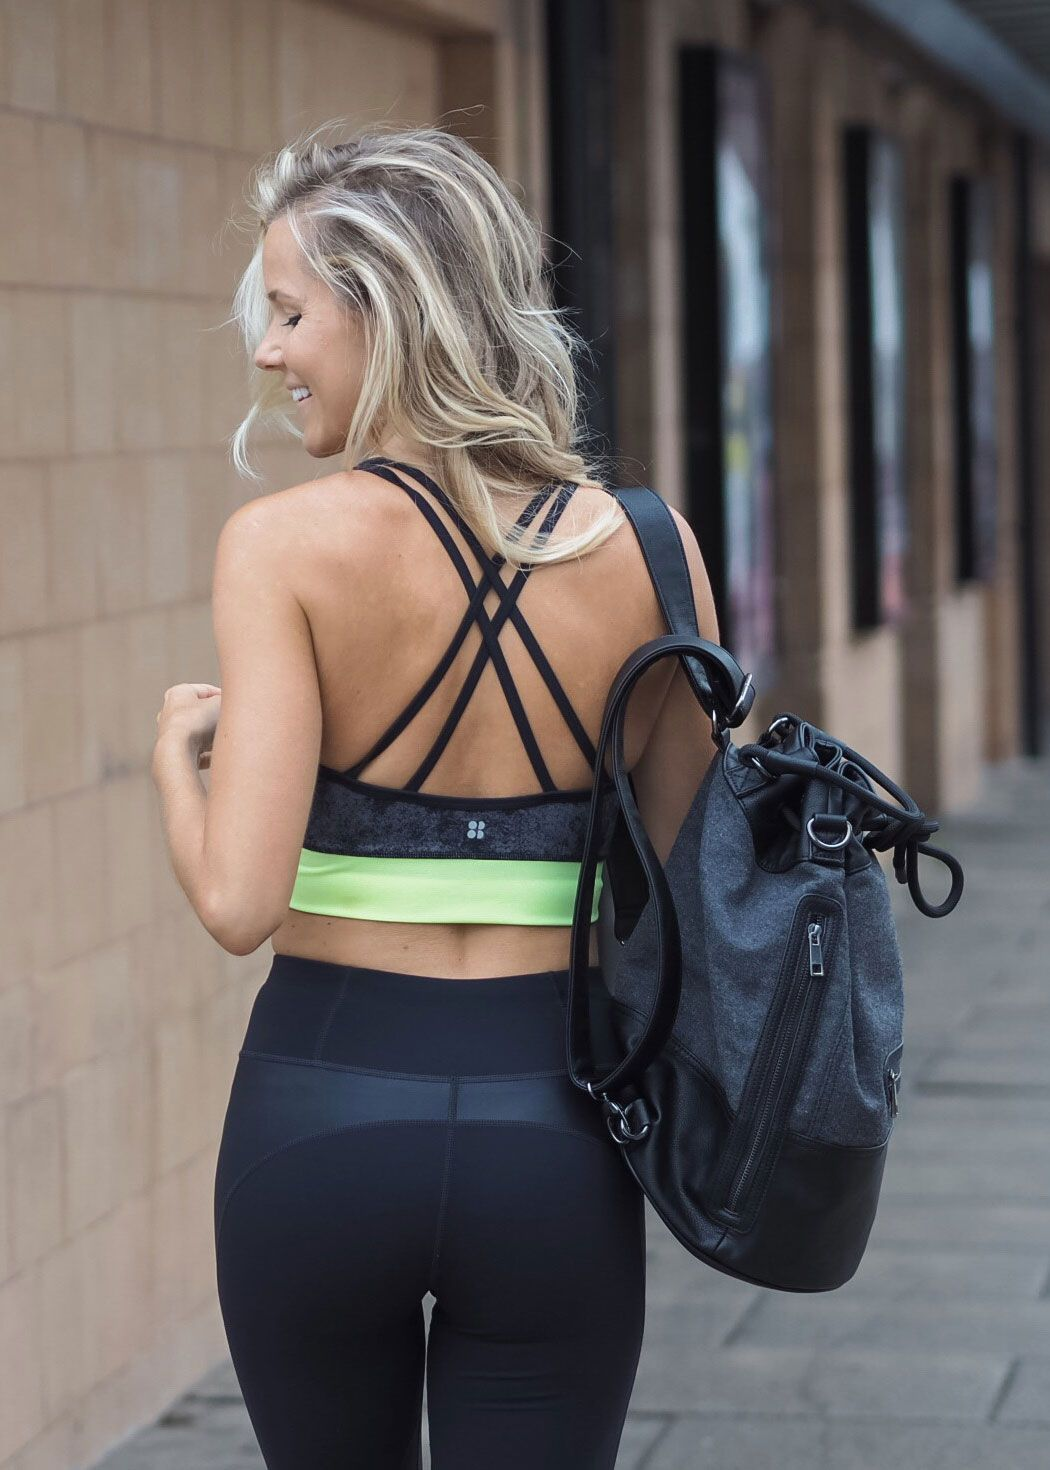 From sports bras to bags, we've got your new season fit kit sorted.